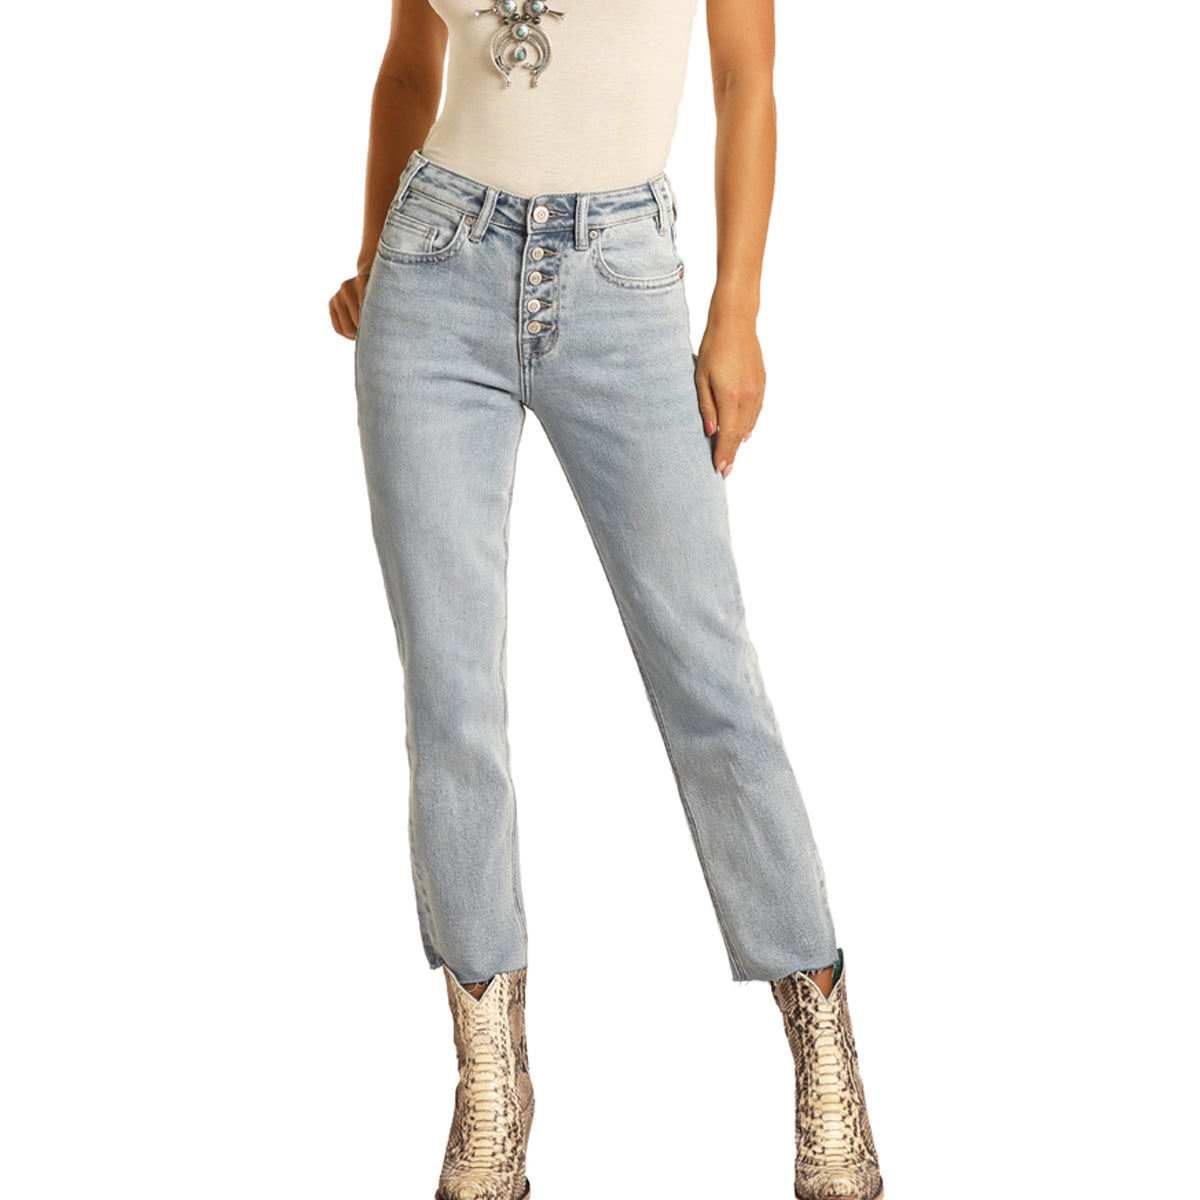 Rock & Roll Cowgirl Women's High Rise Cropped Jeans - Light Wash